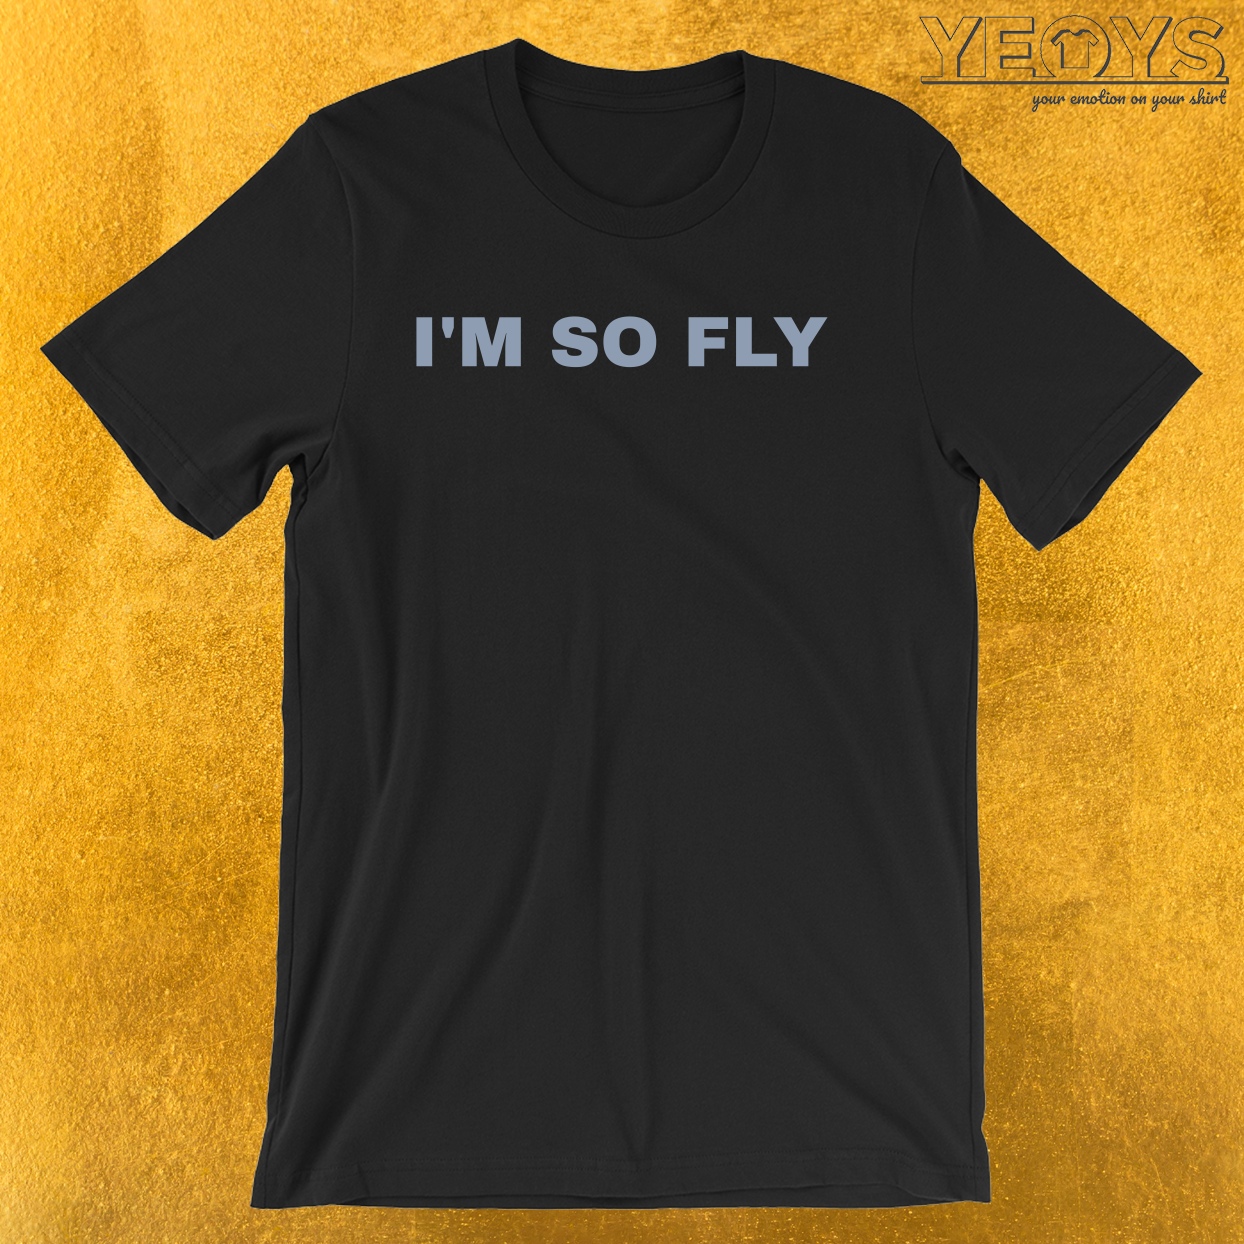 I'm So Fly – Cool Fly Fishing Tee